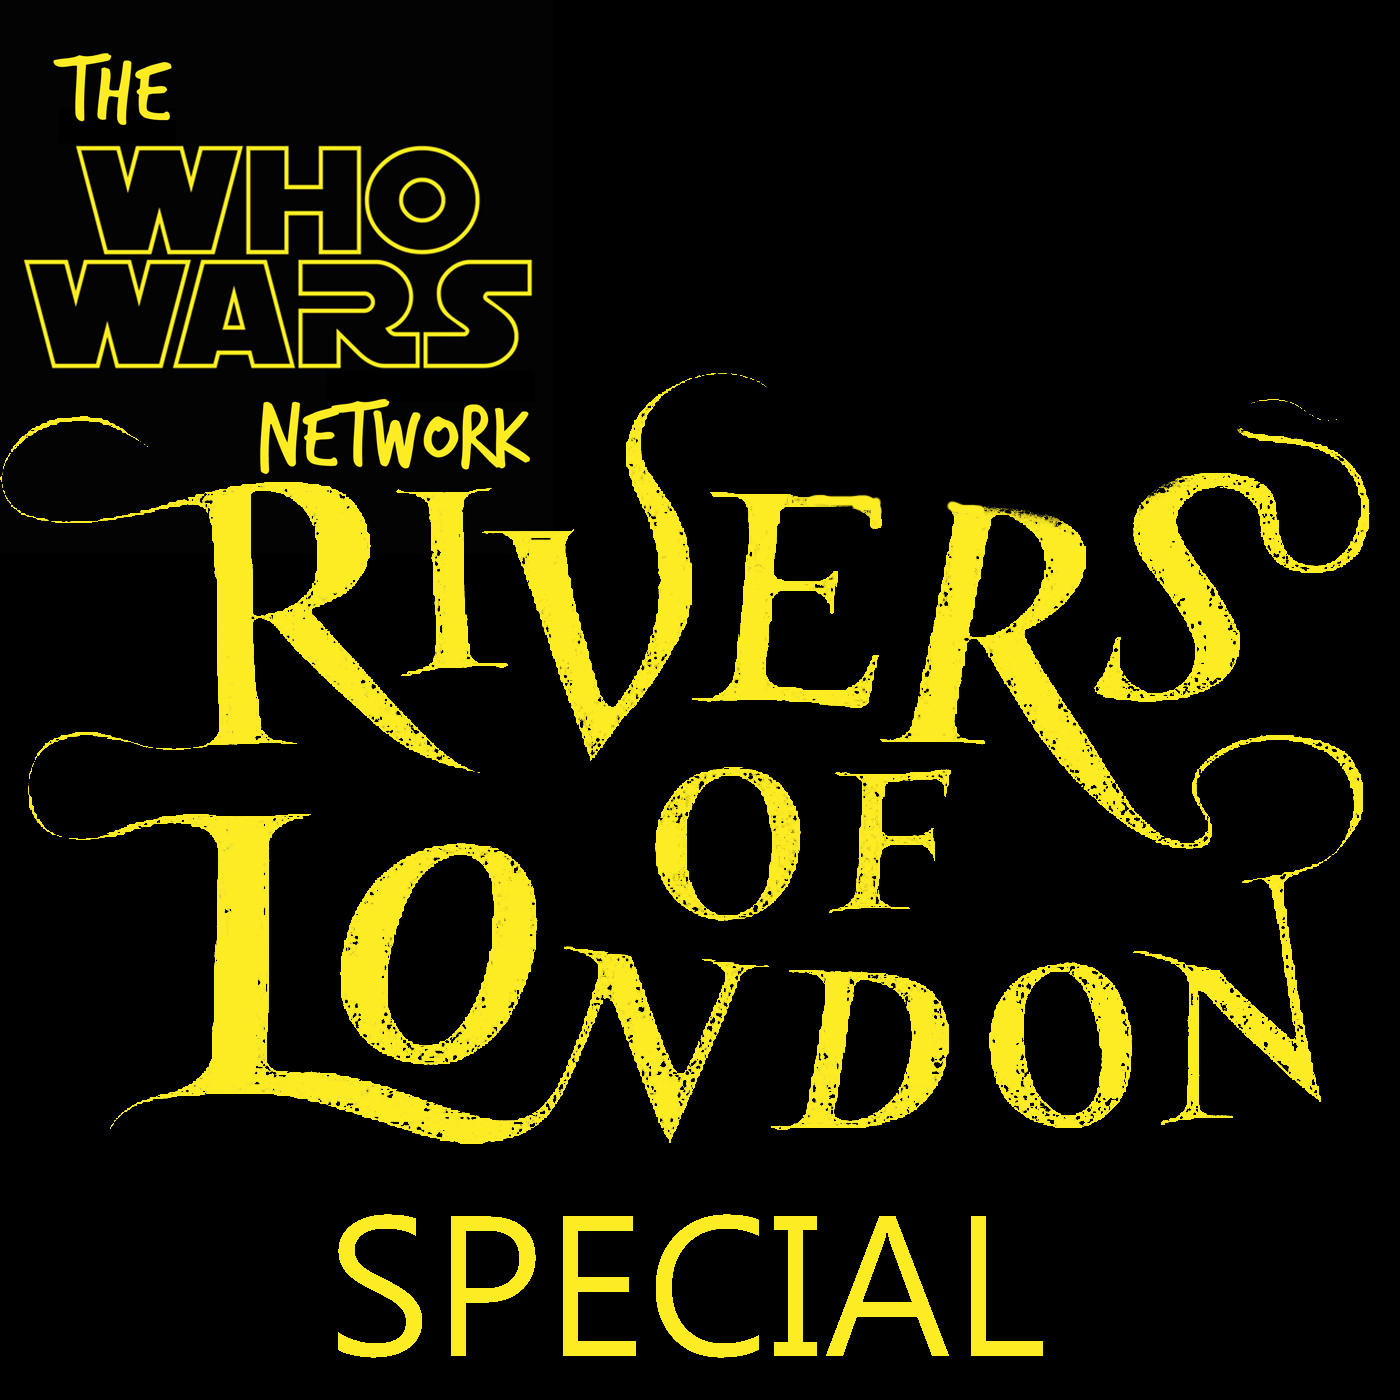 Who Wars: Rivers of London Special